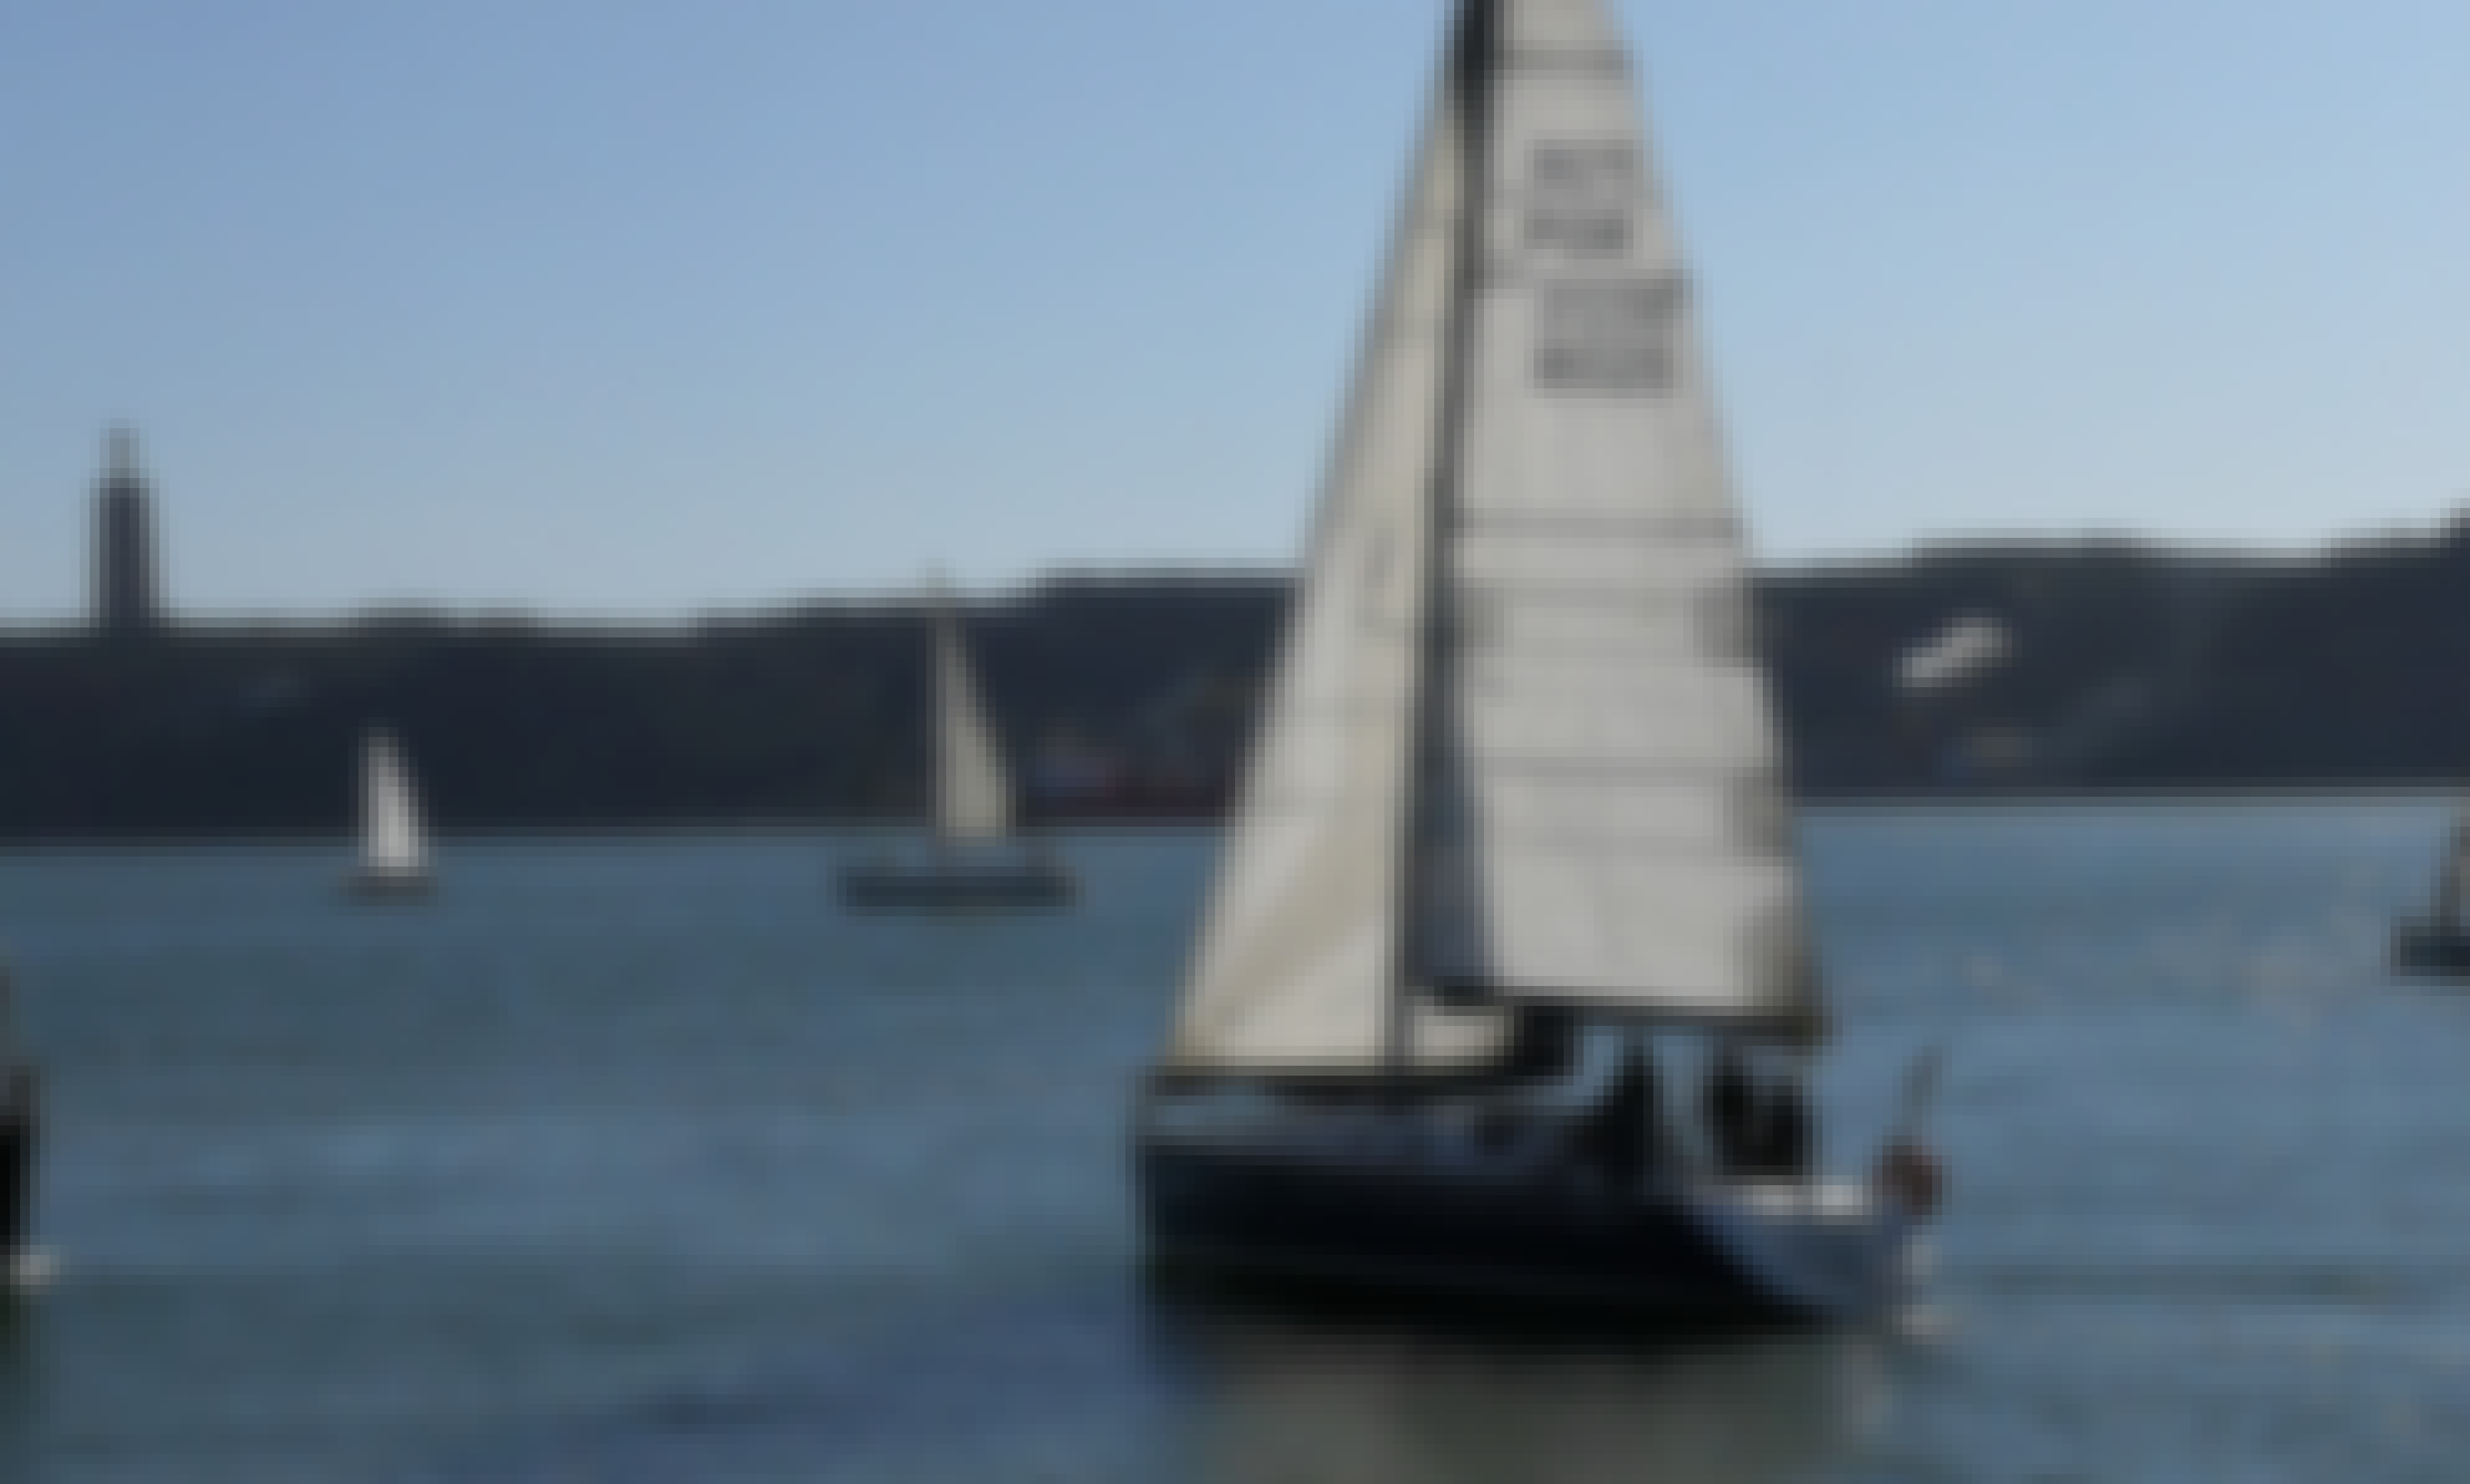 Lisbon Seightseeing Cruising Aboard a 31 ft Cruising Monohull for 6 People